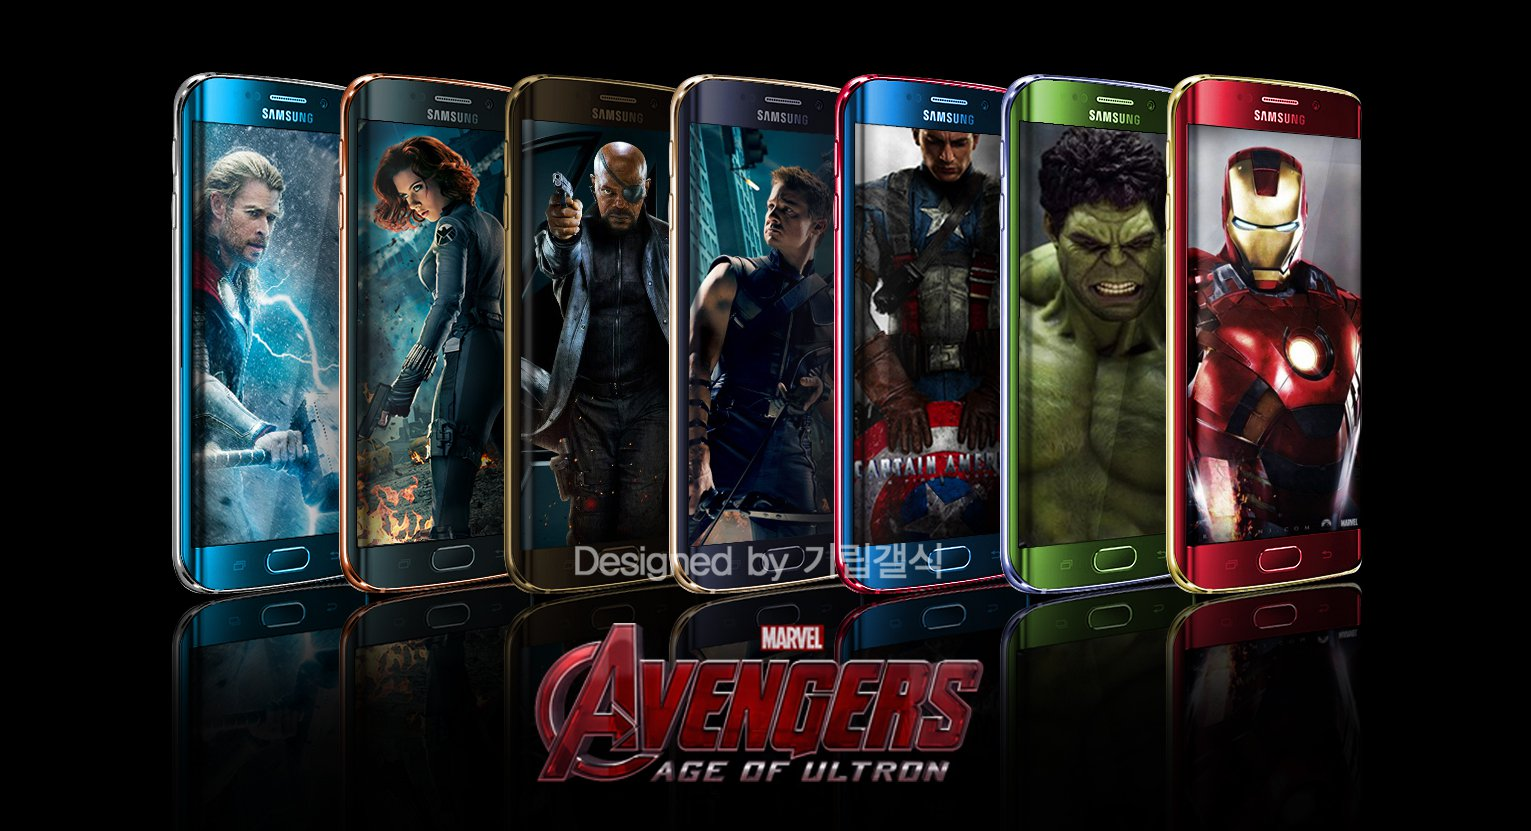 Samsung Considering Limited Edition Of Avengers-Themed Galaxy S6 Edge